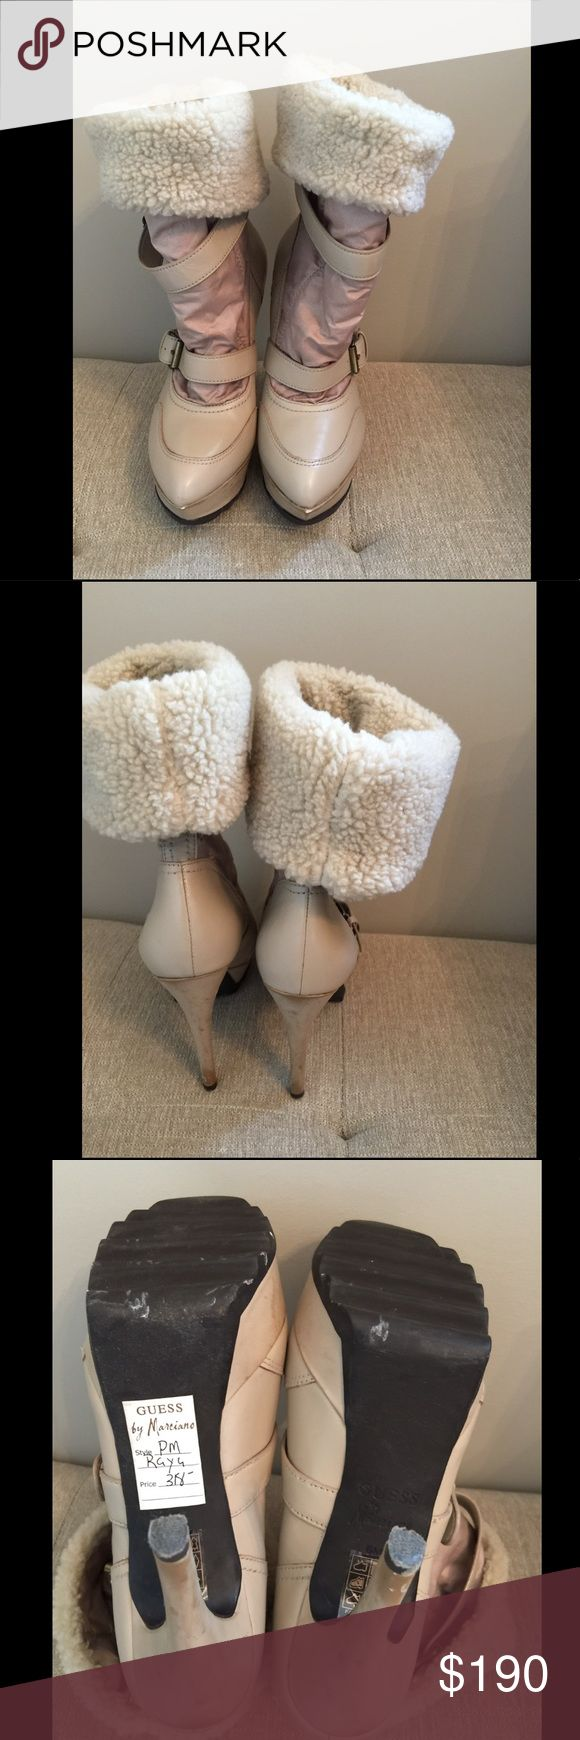 Guess Marciano boots Guess Marciano winter boots. Beautiful boots but no occasions to wear them. New. Never worn. Size 6. Still Price tag on it. Before tax $318 Guess by Marciano Shoes Winter & Rain Boots